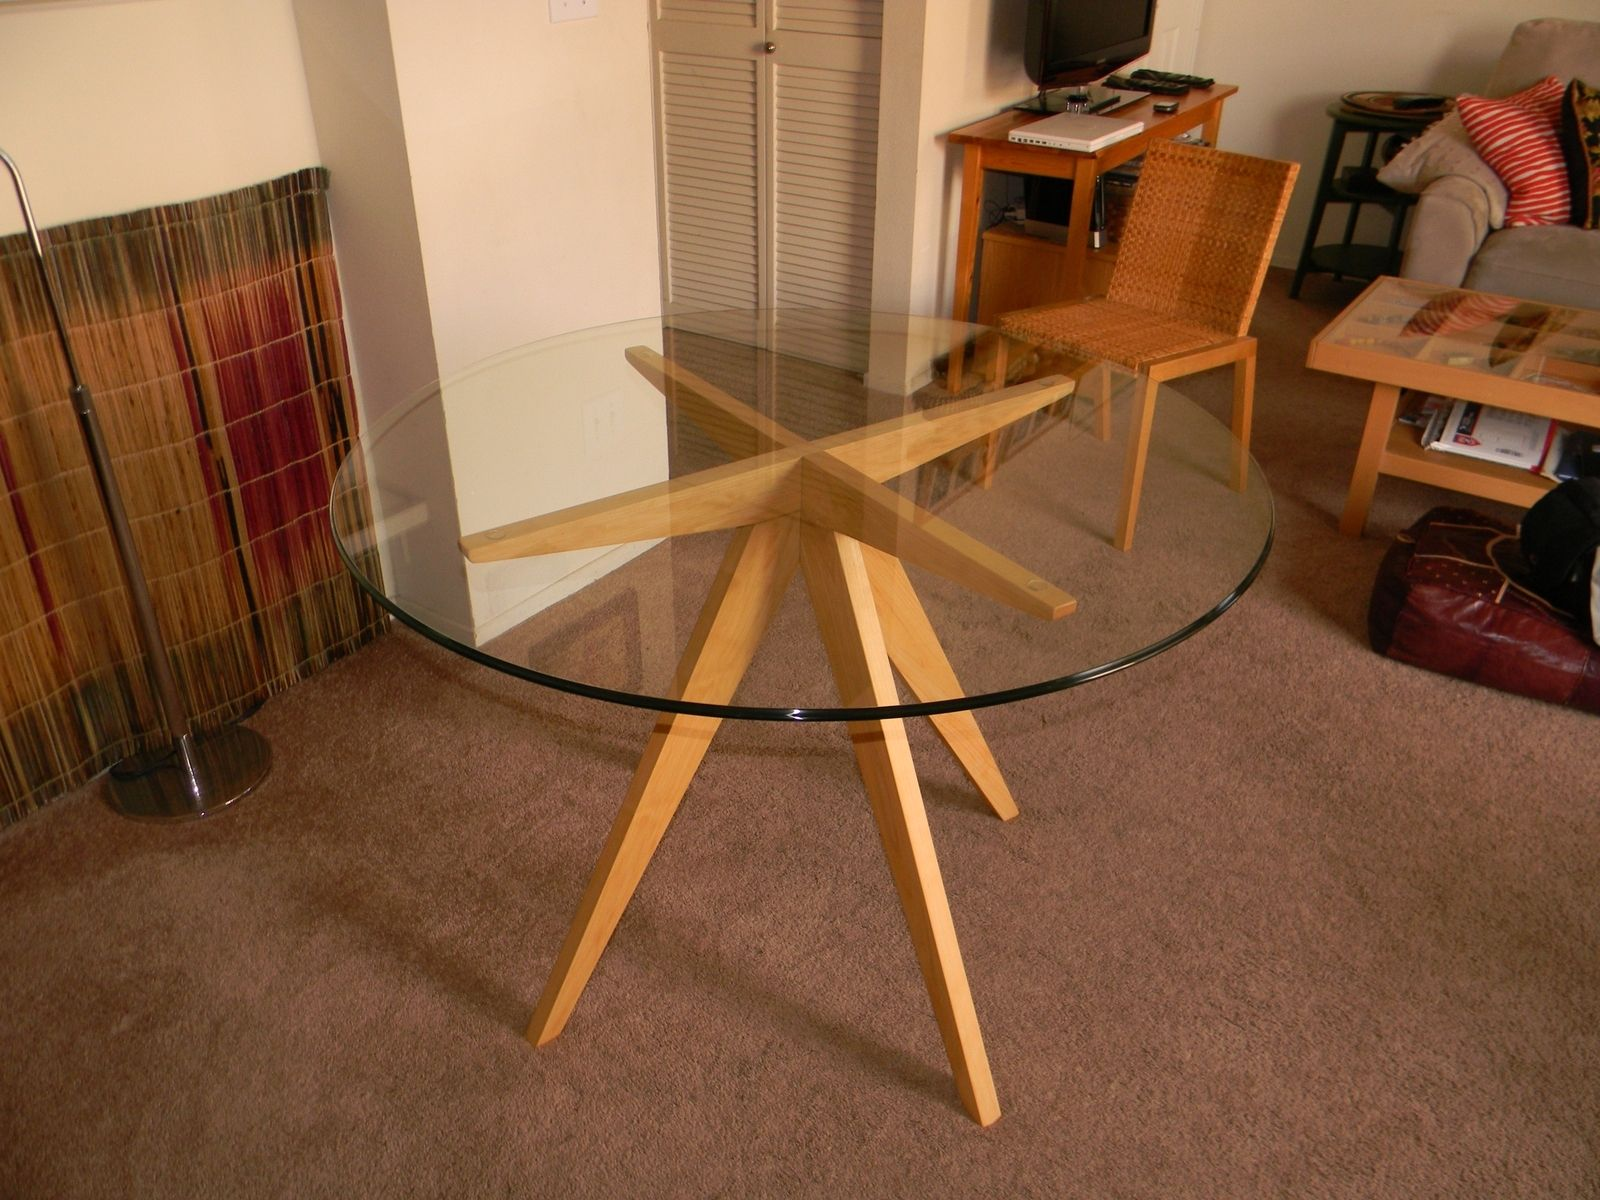 Dining room table bases for glass tops - Table Base For Glass Top Dining Table